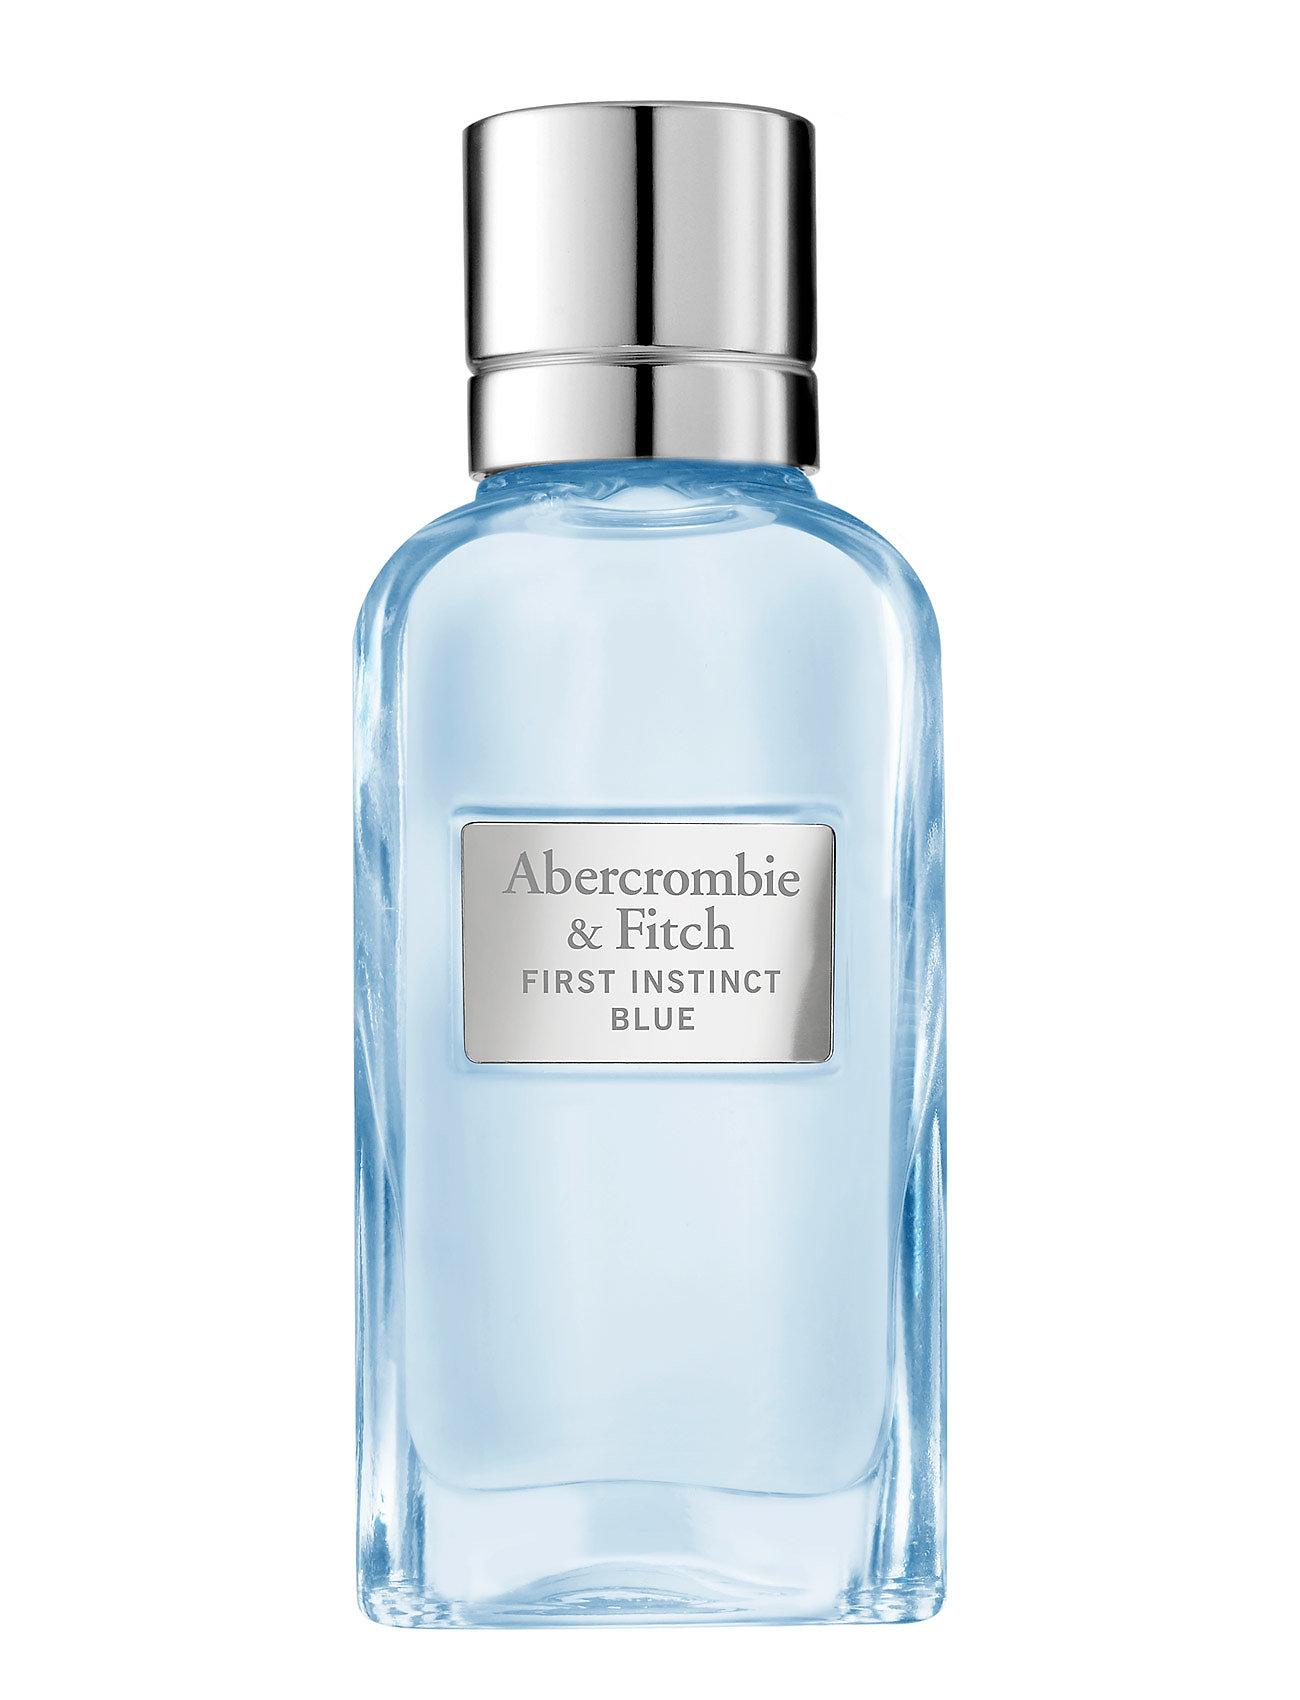 Abercrombie & Fitch FIRST INSTINCT BLUE FOR HER EAU DE PARFUM